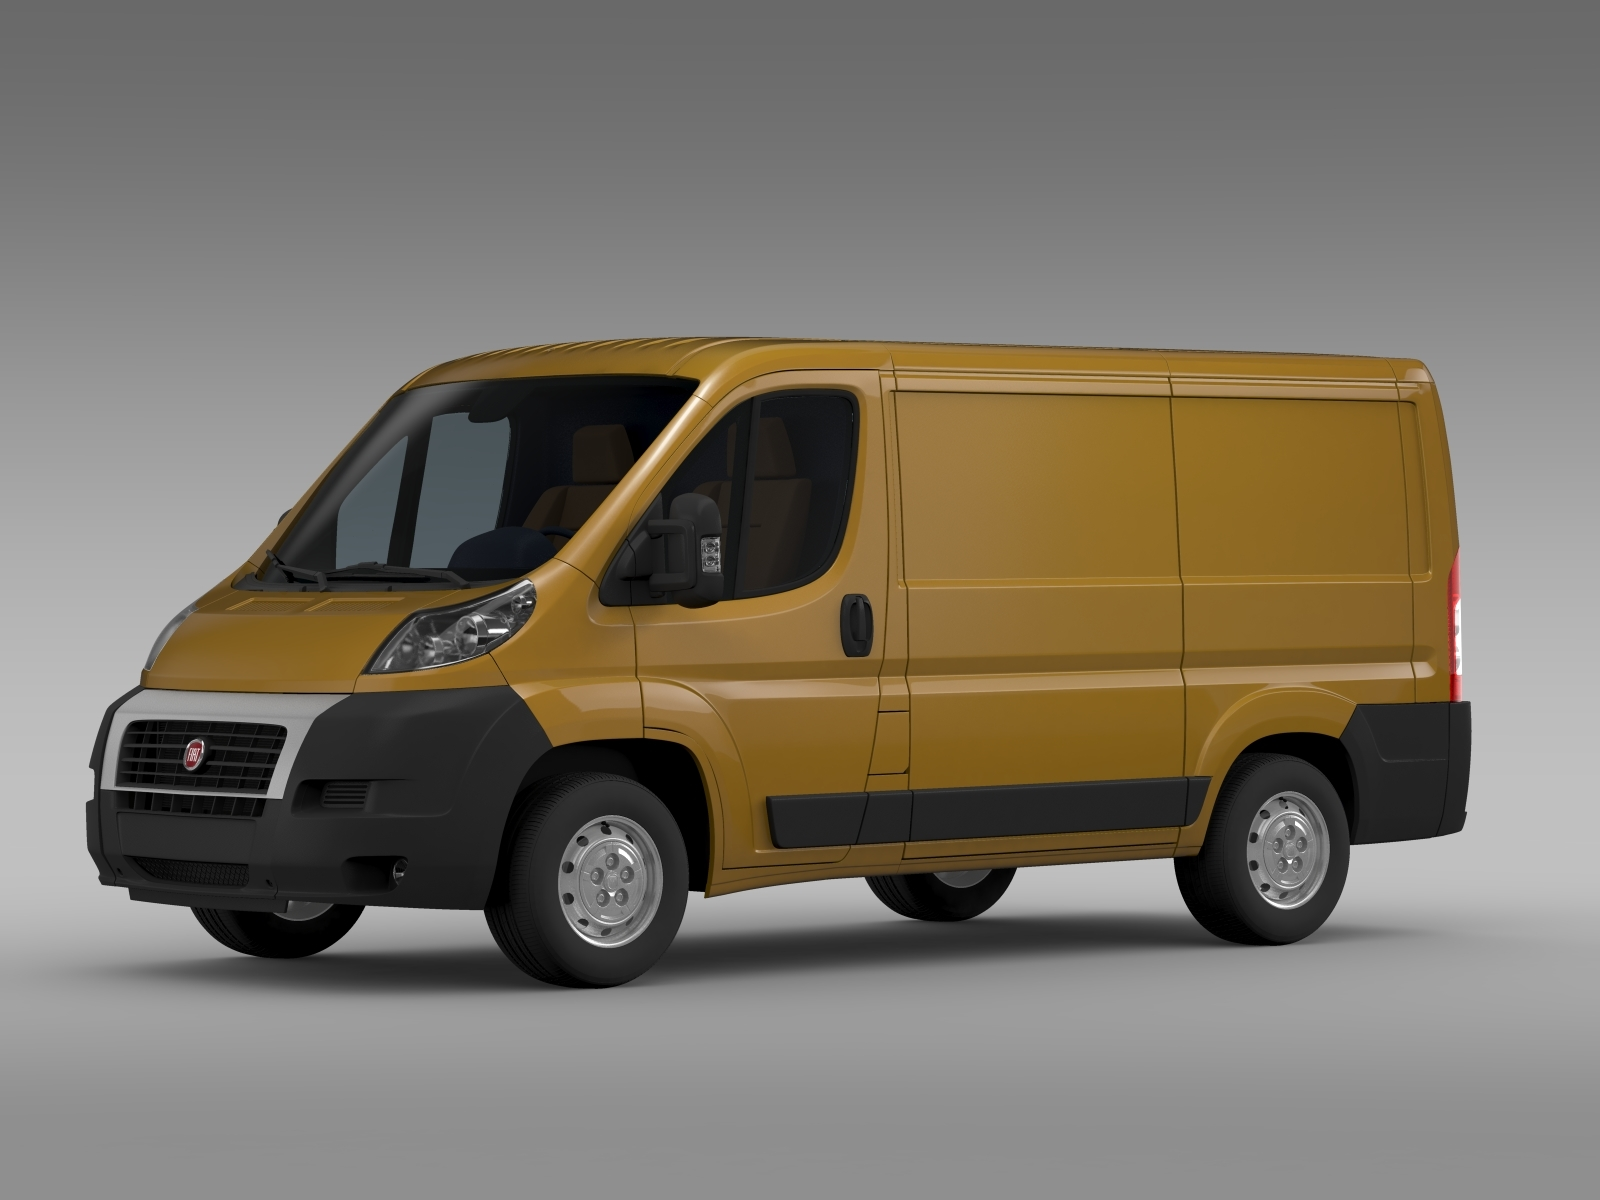 fiat ducato van l1h1 2006 2014 by creator 3d 3docean. Black Bedroom Furniture Sets. Home Design Ideas